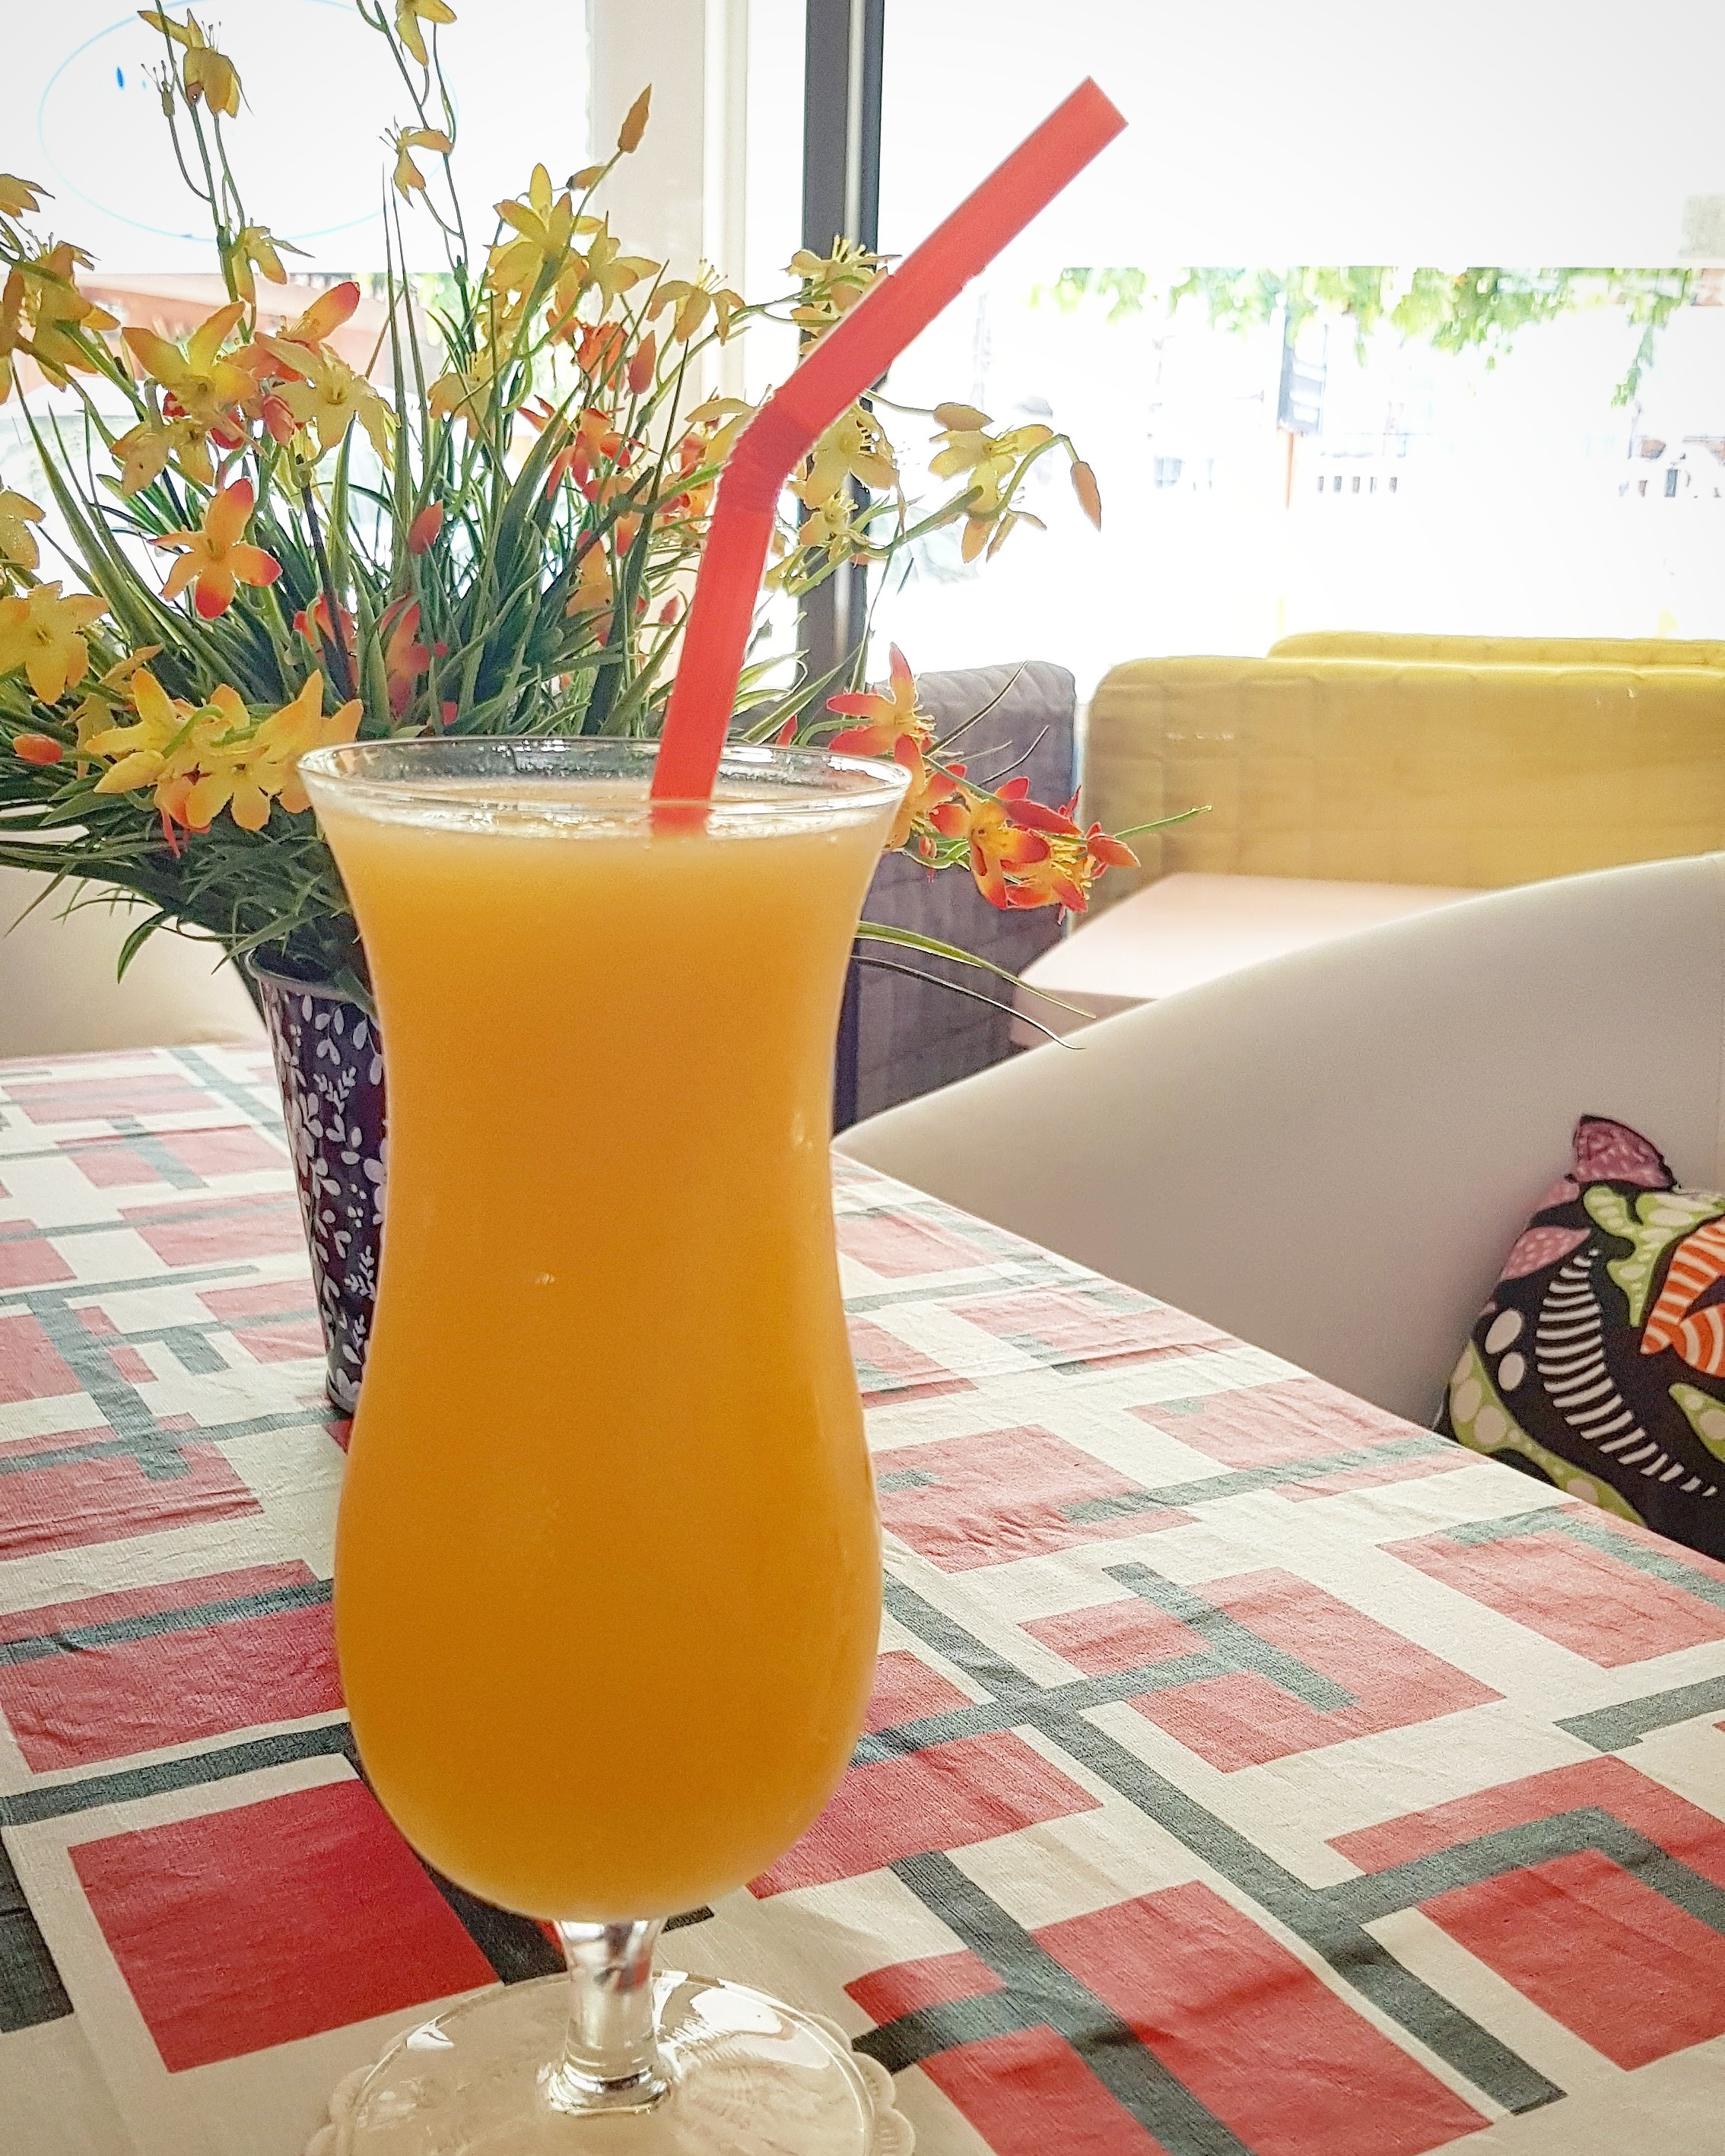 Blended Mango Juice